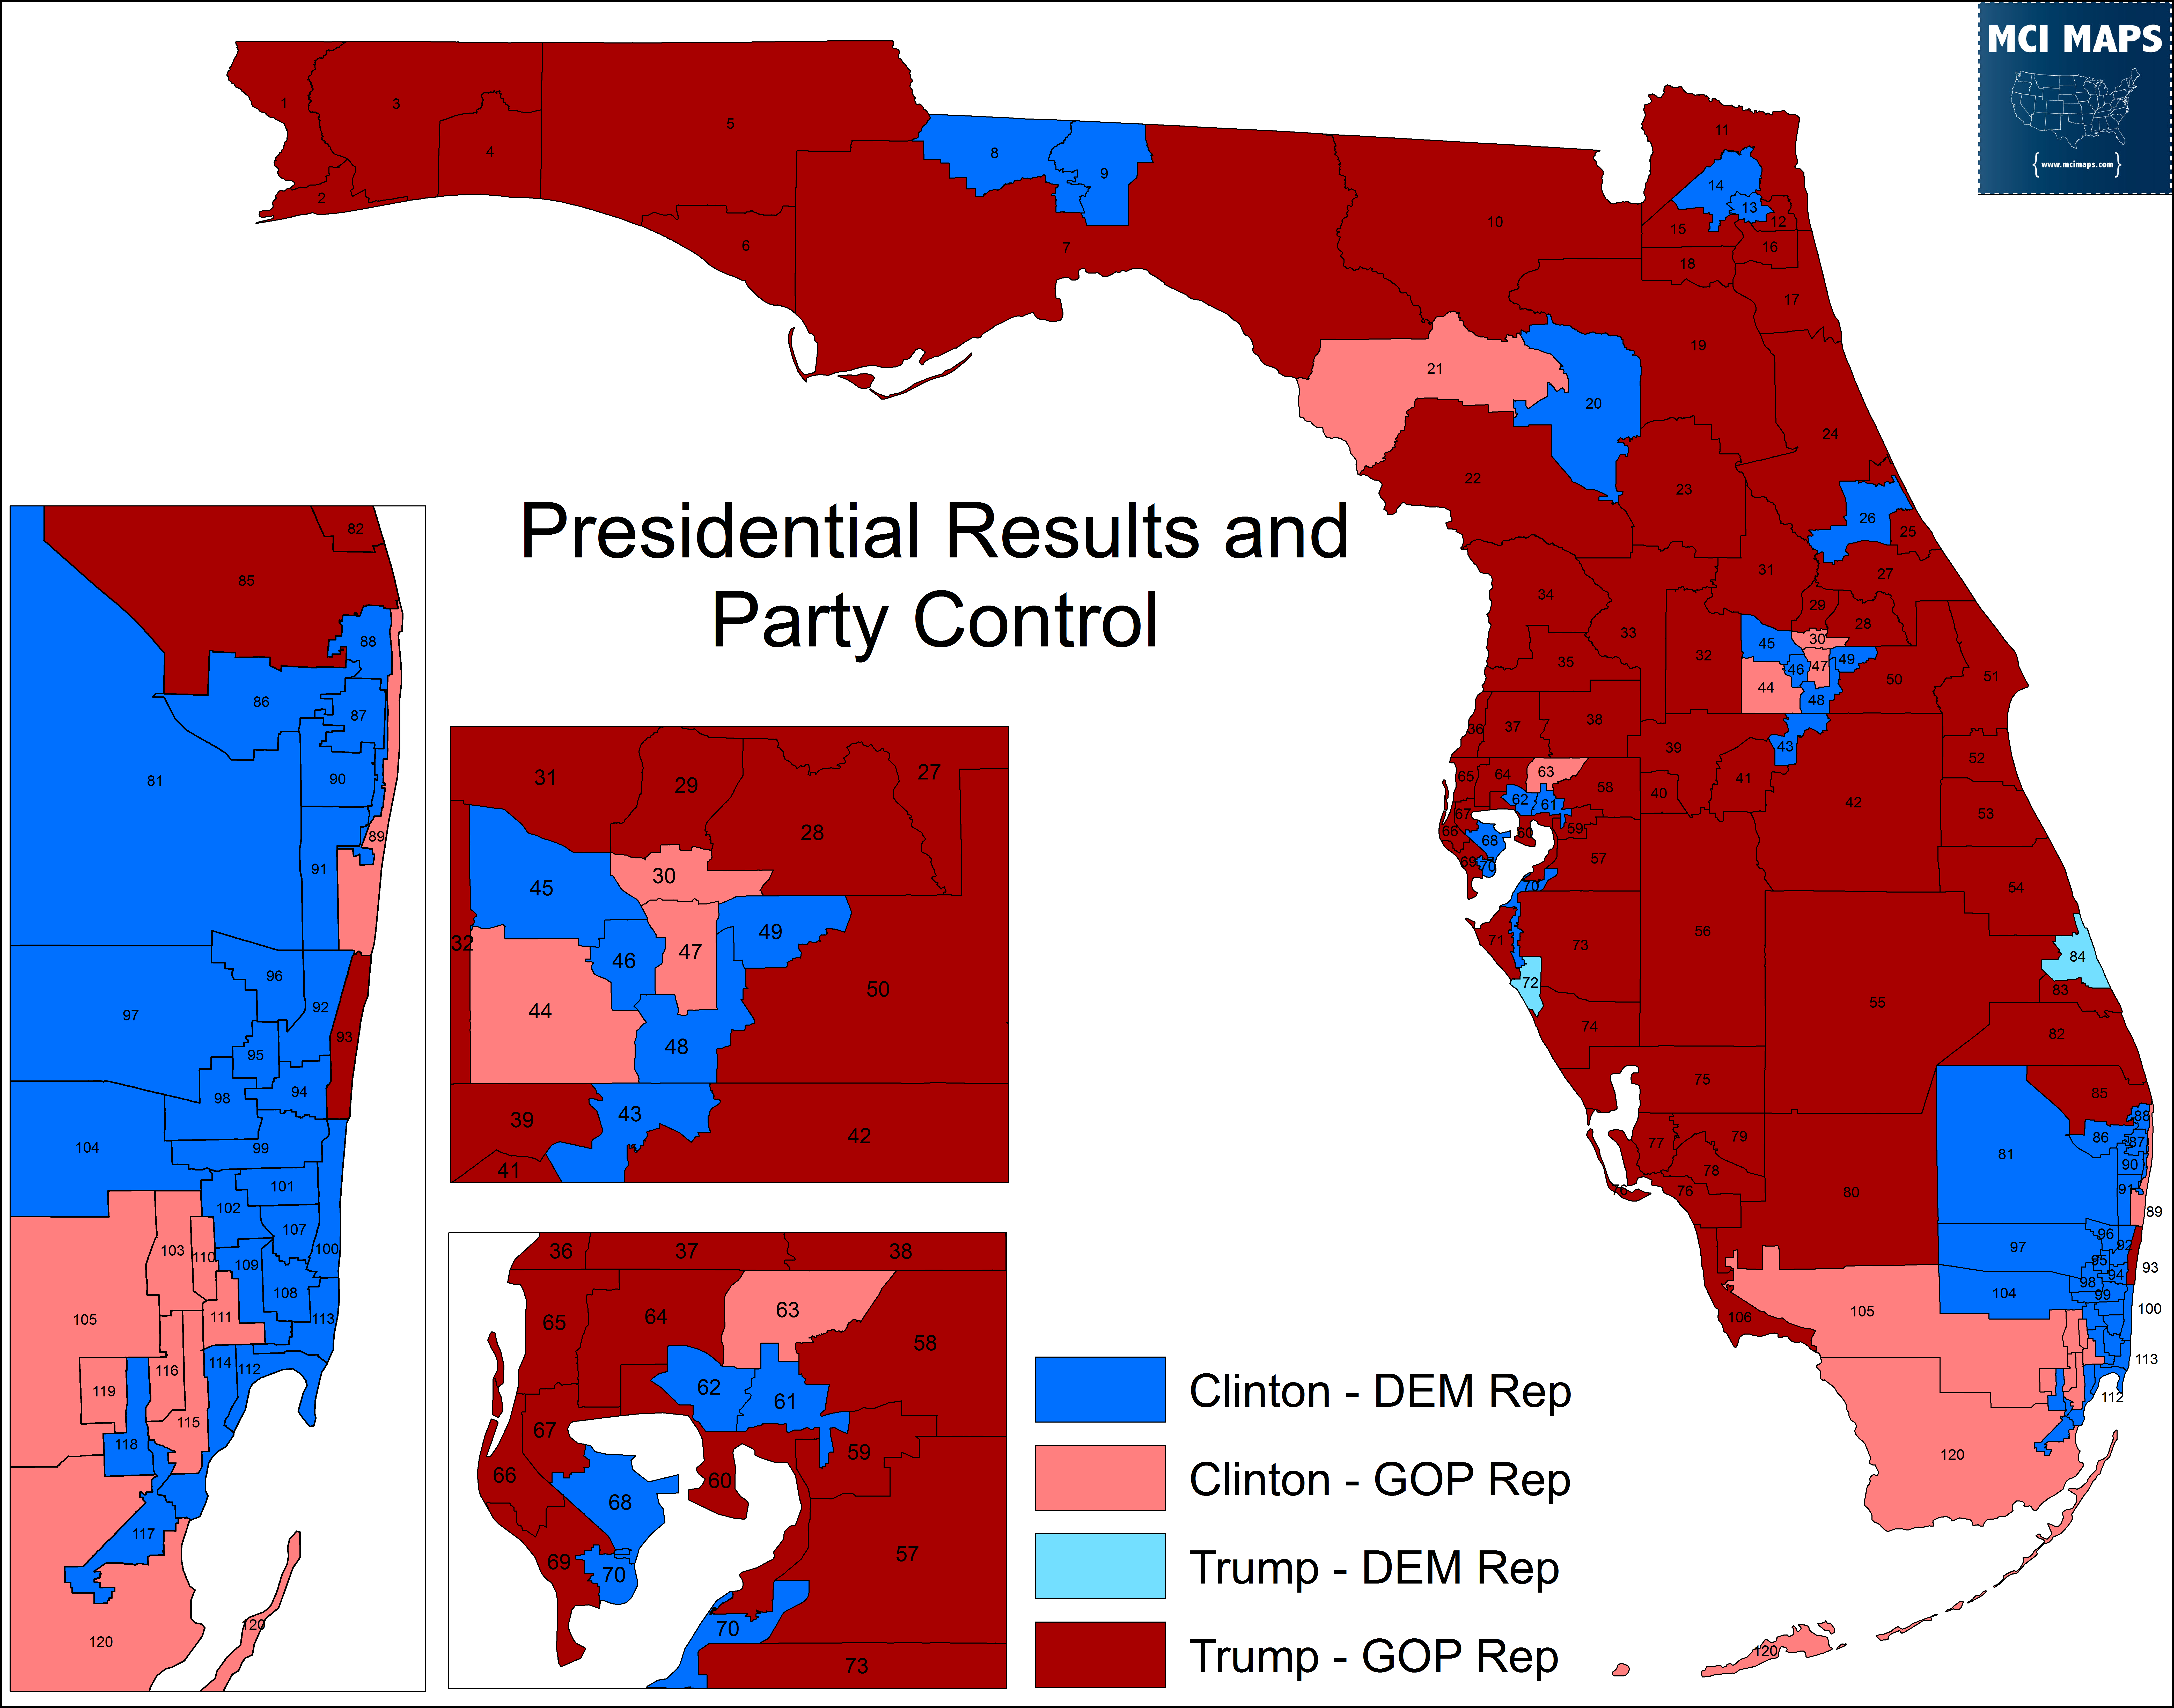 Florida S 2018 State House Ratings Mci Maps